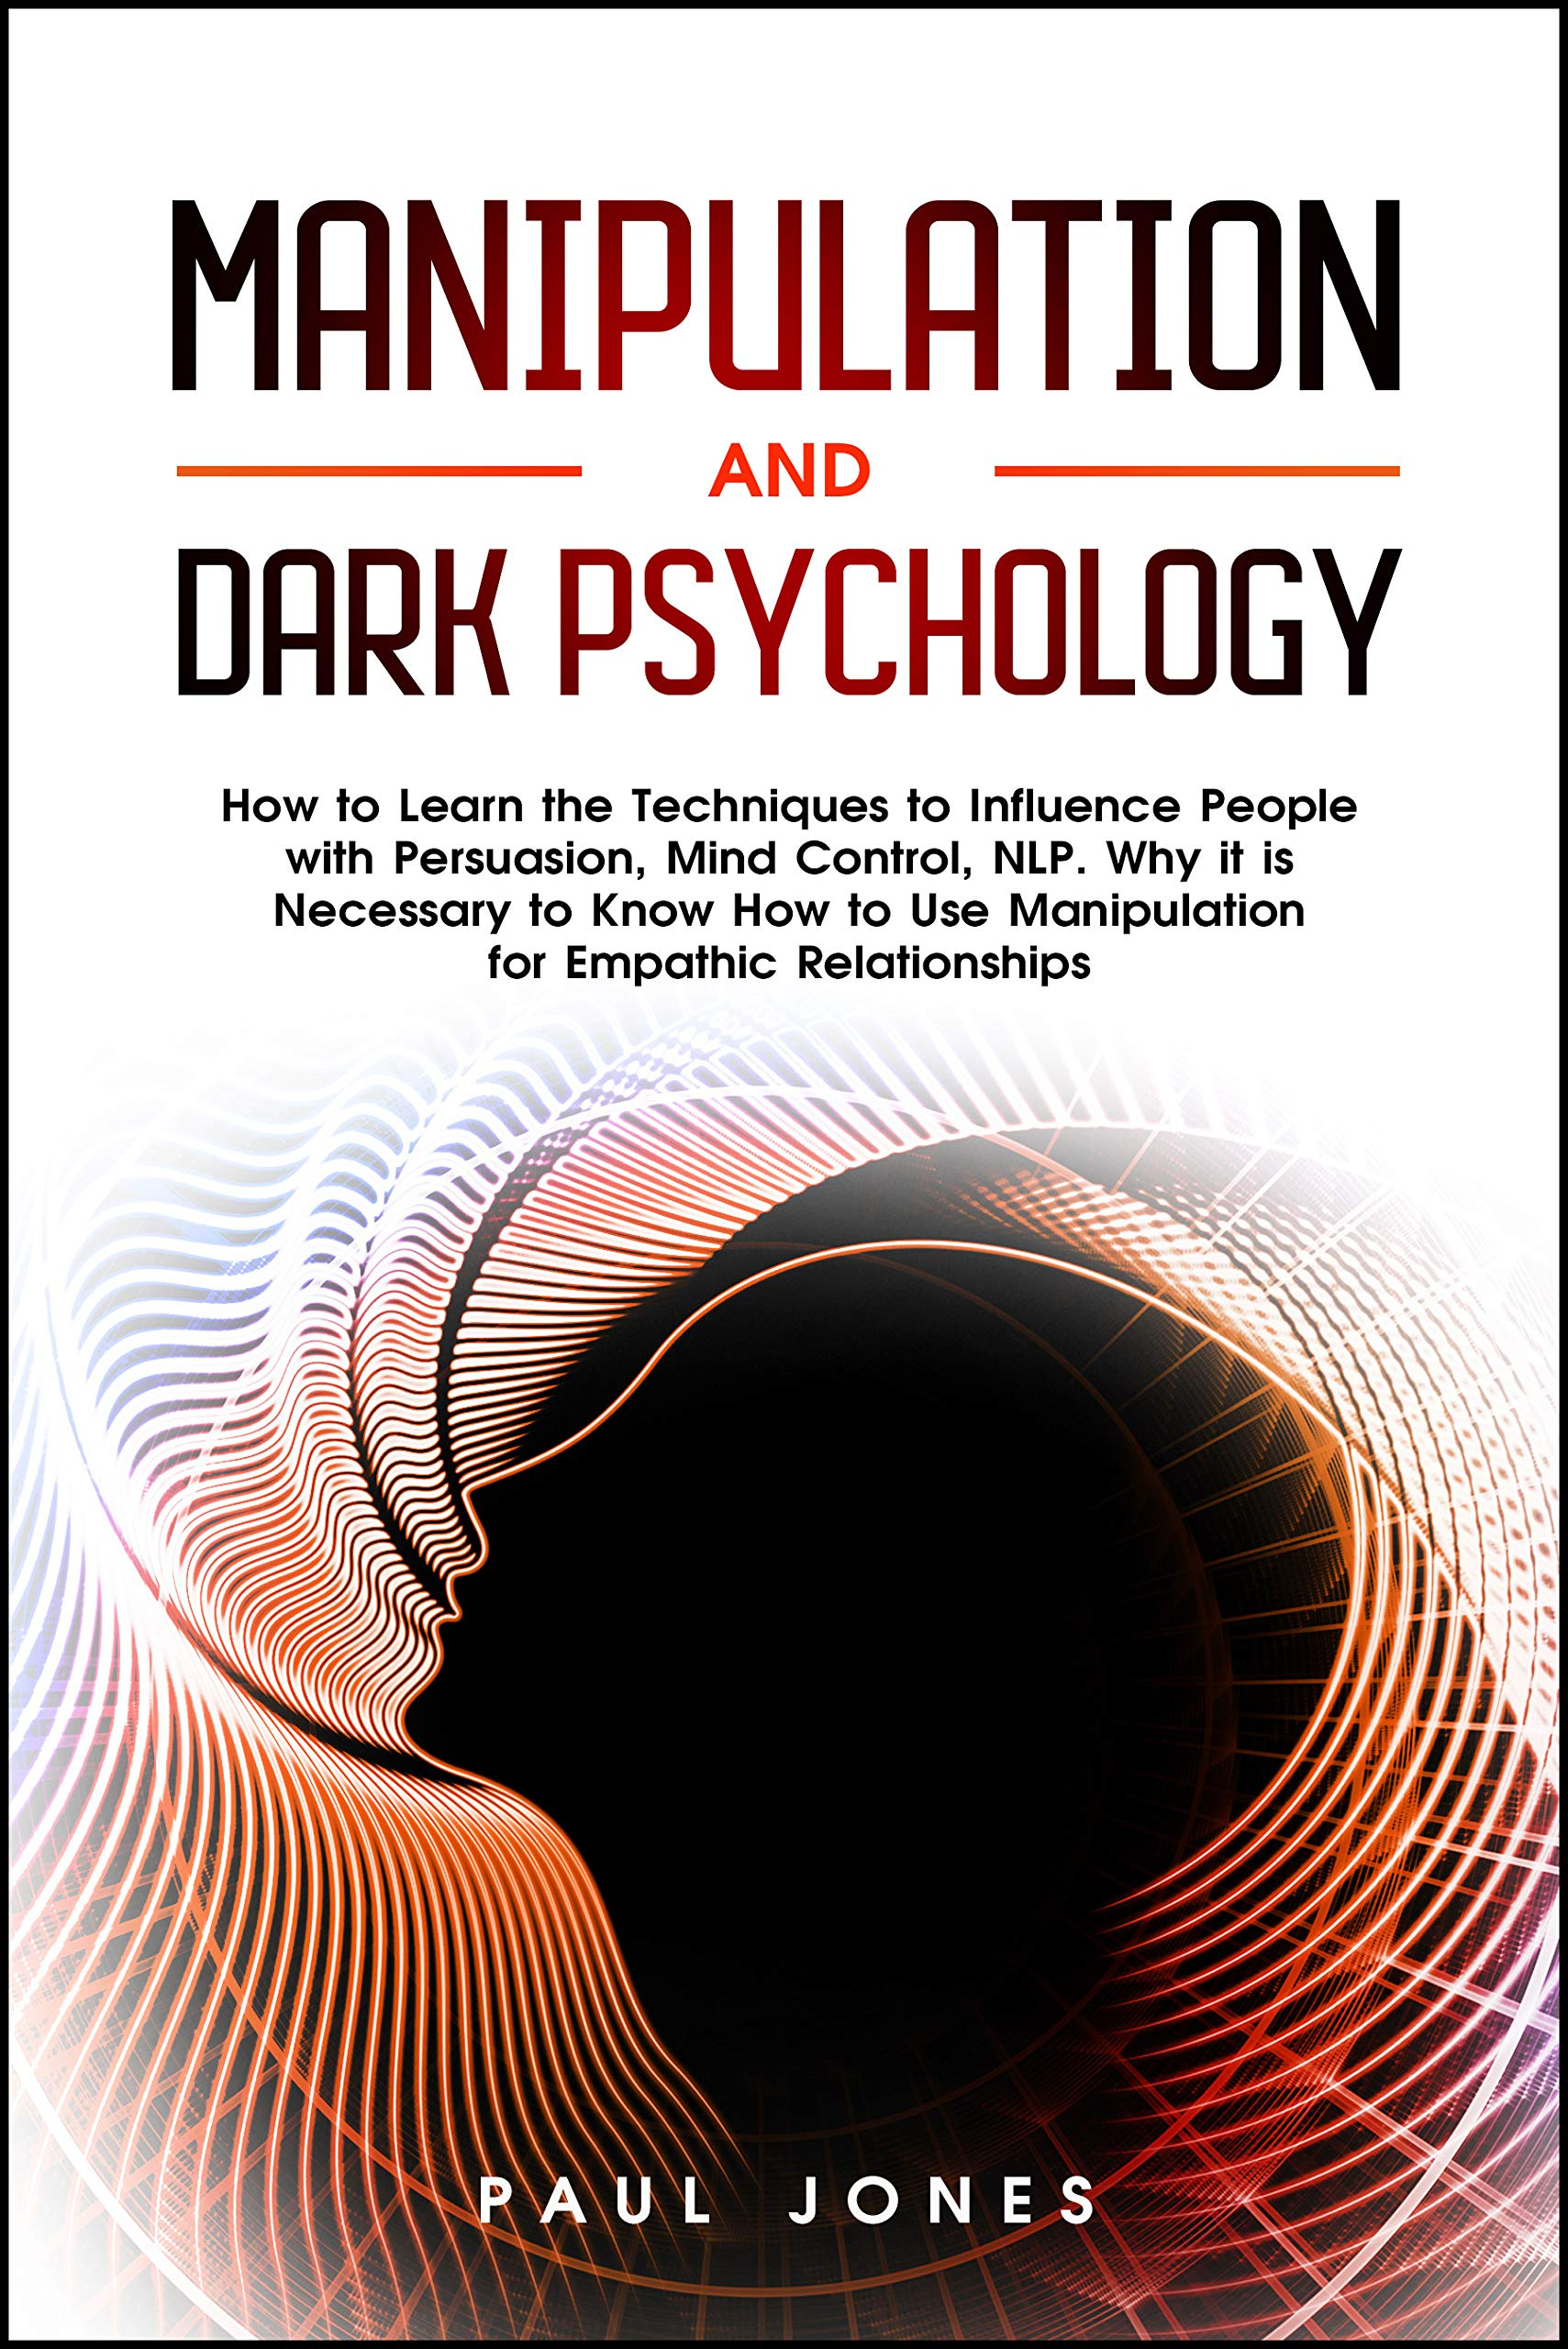 Manipulation And Dark Psychology  How To Learn The Techniques To Influence People With Persuasion Mind Control NLP. Why It Is Necessary To Know How ... For Empathic Relationships  English Edition